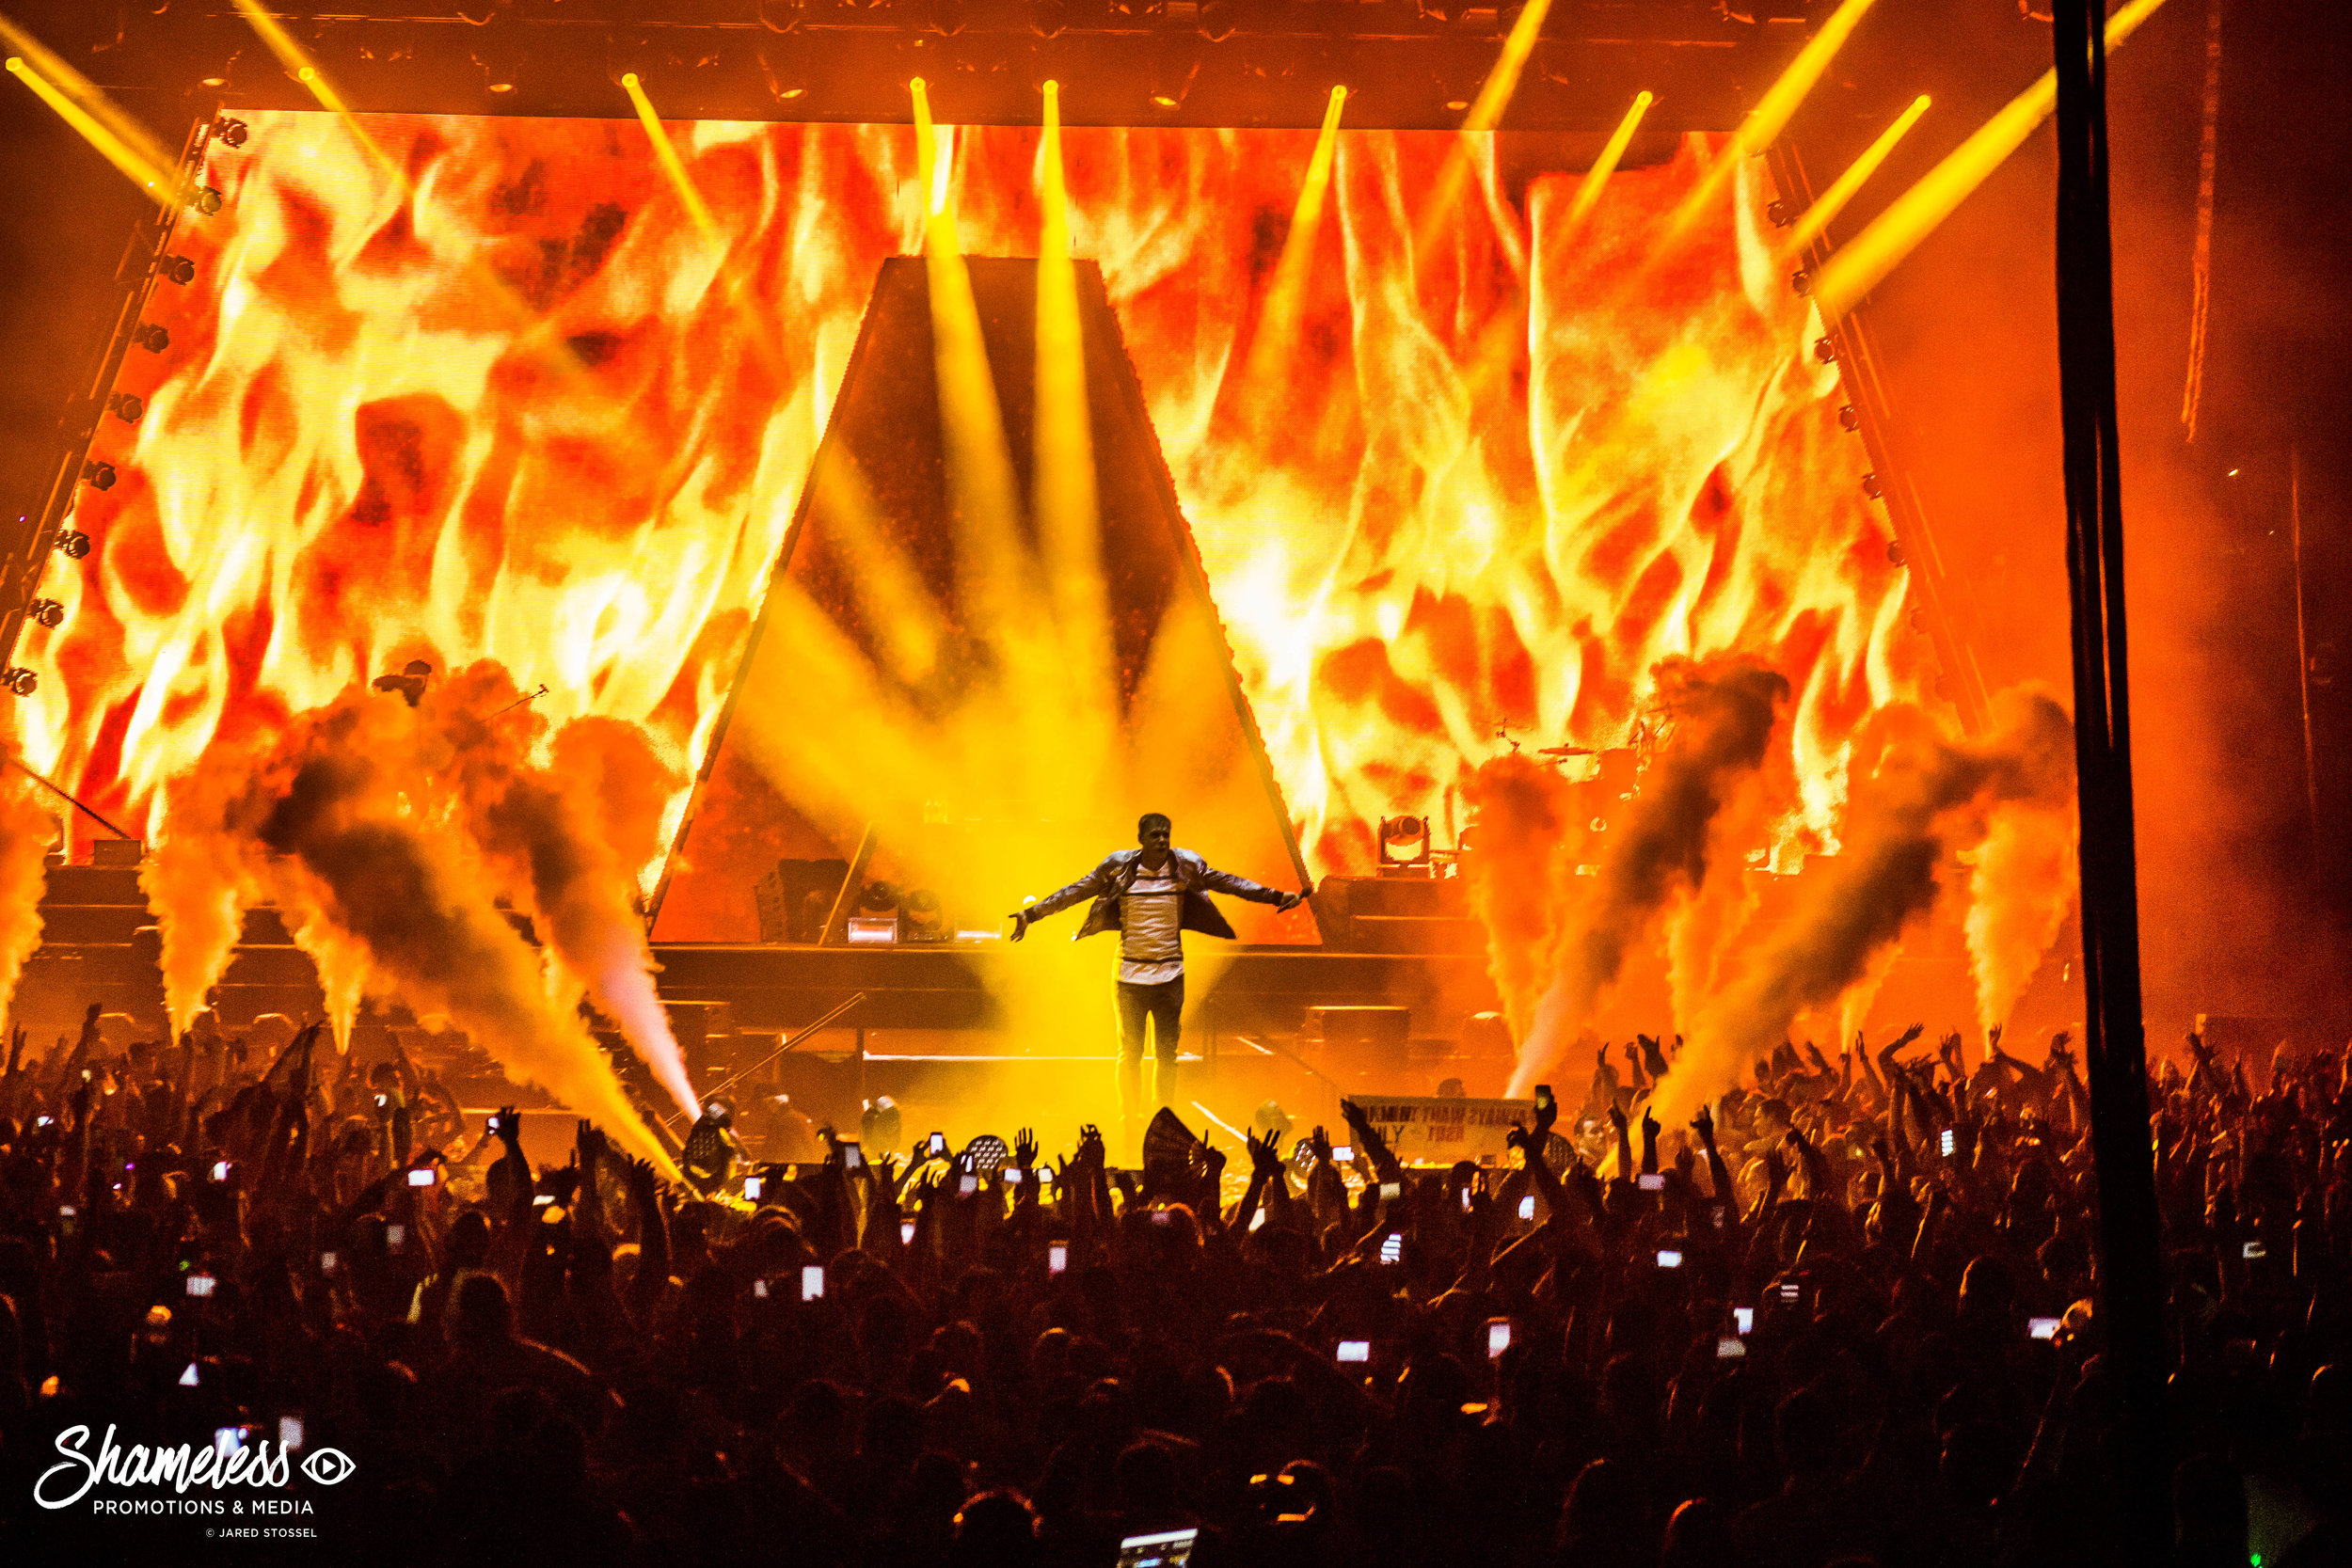 Armin van Buuren performing his 'Armin Only: Embrace' show at Oracle Arena in Oakland, CA. February 3, 2017. Photo: Jared Stossel